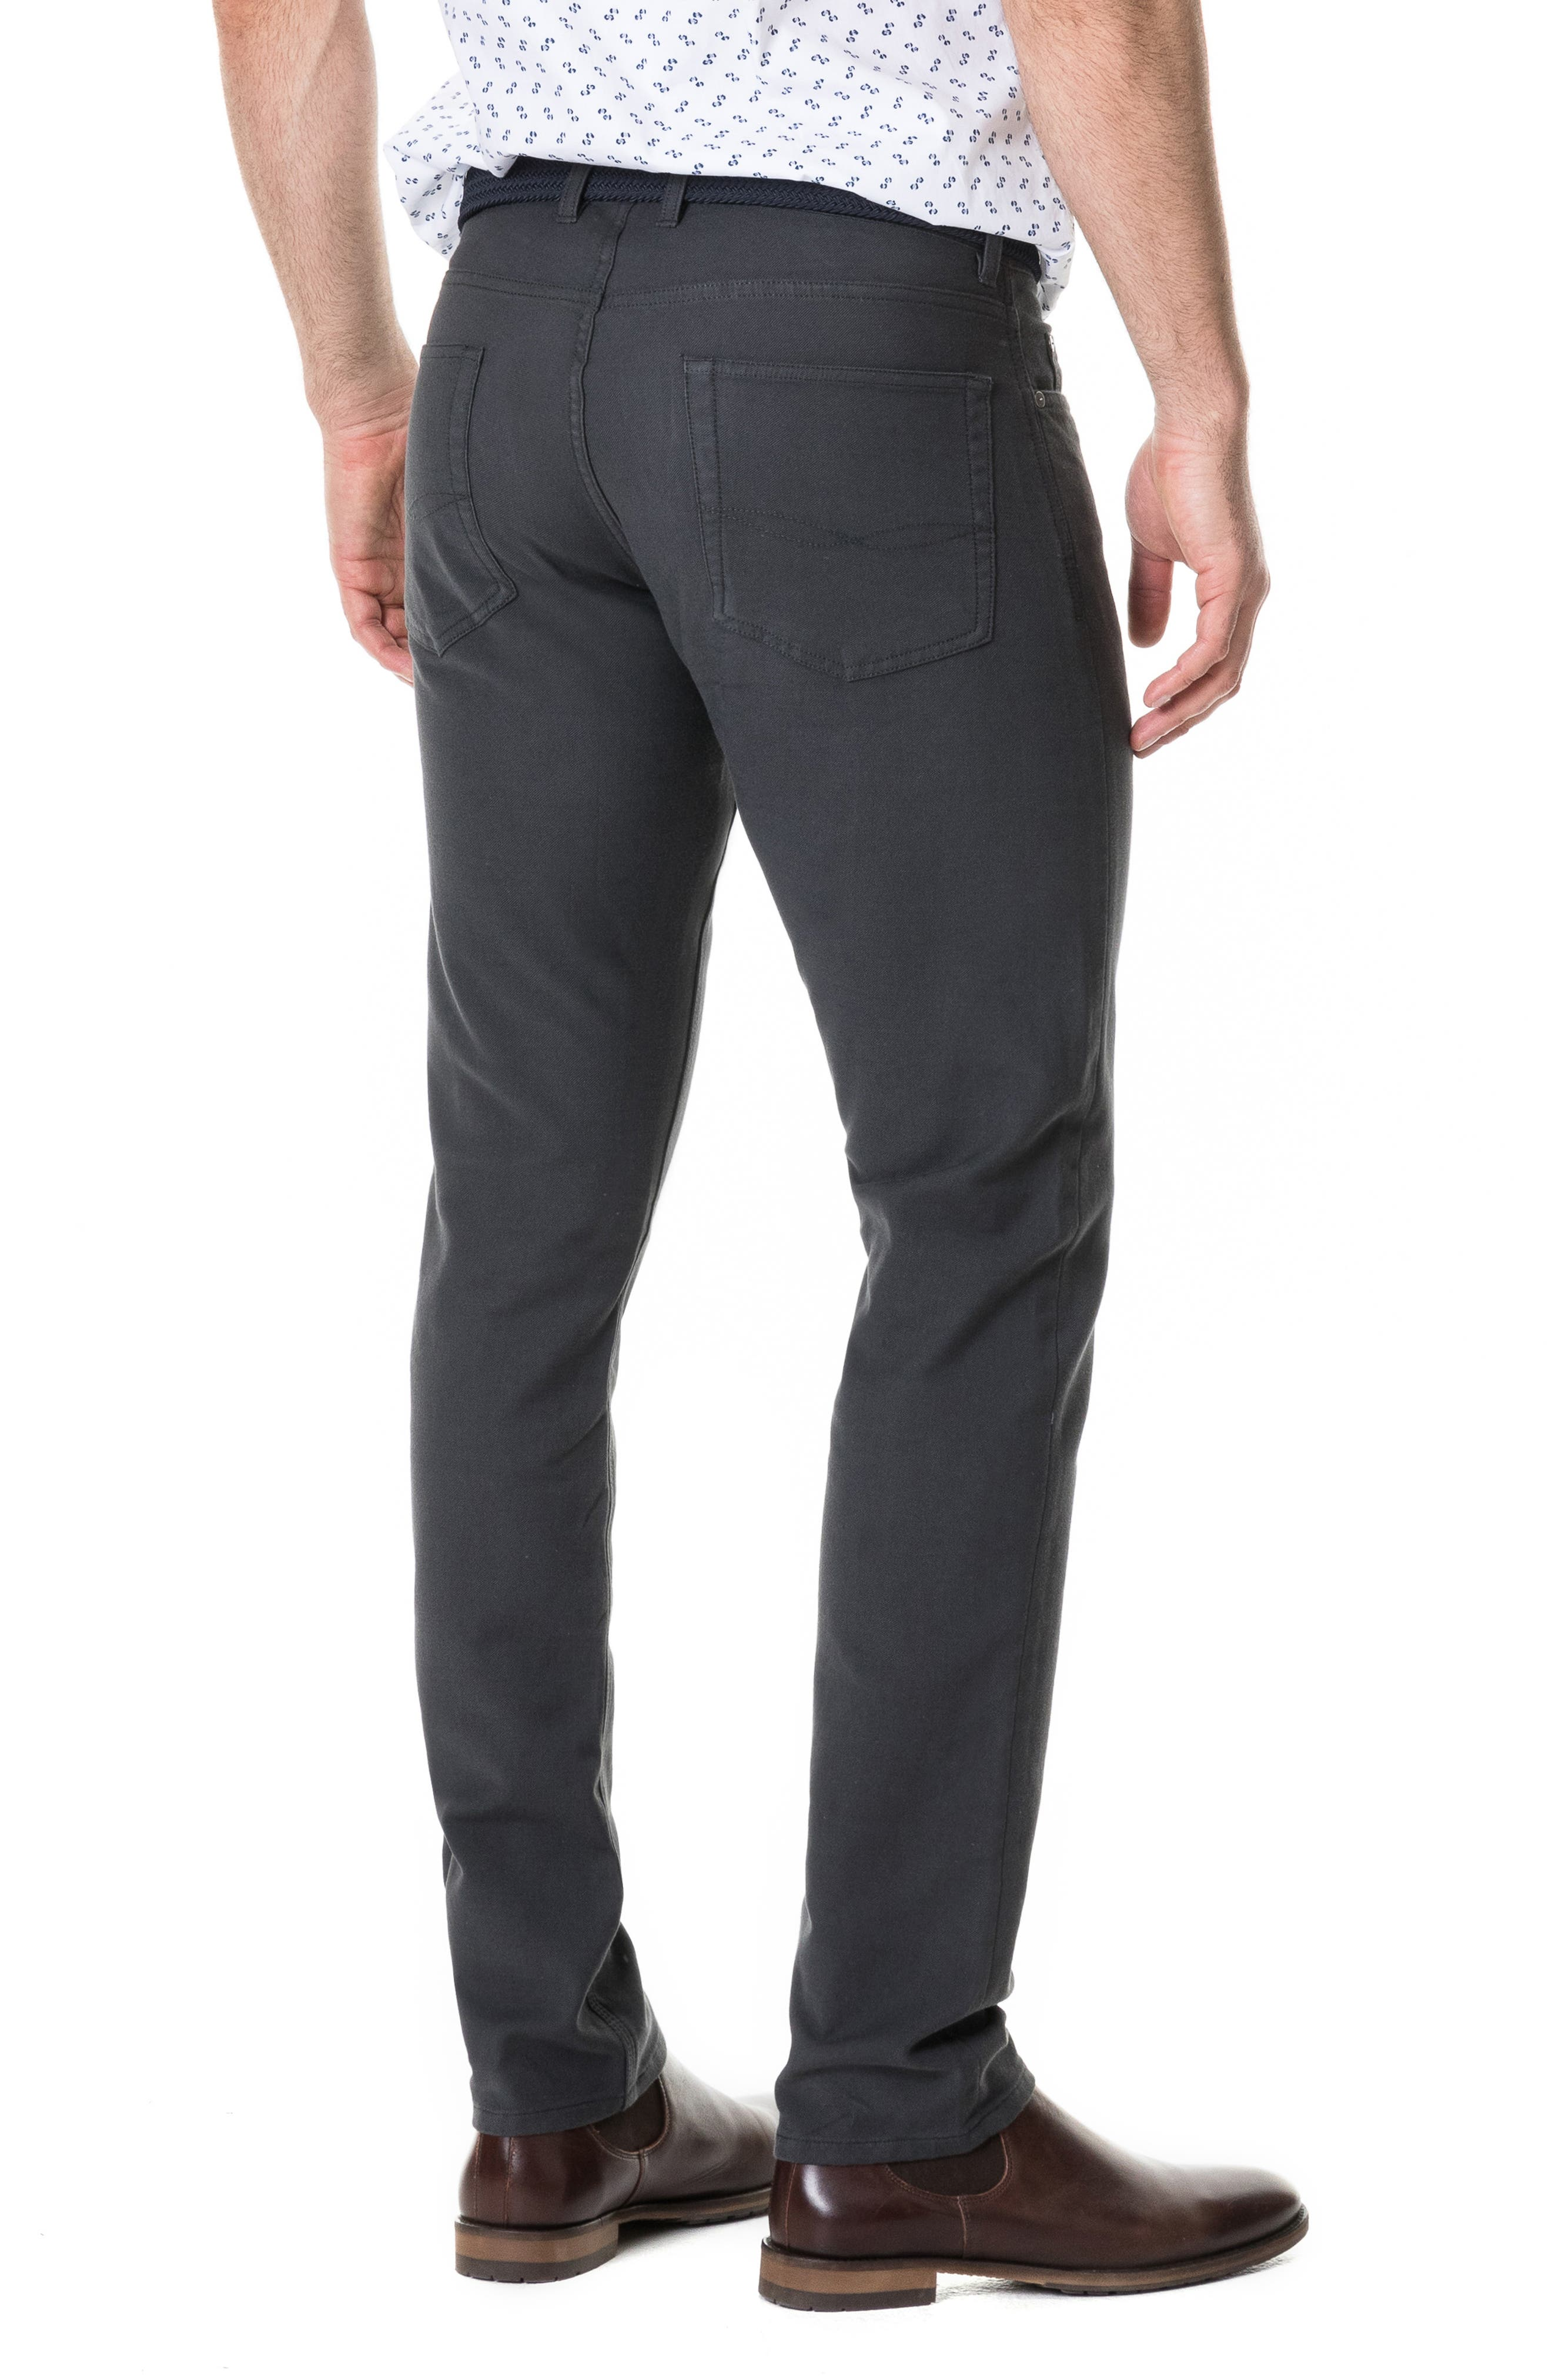 Motion Straight Fit Jeans,                             Alternate thumbnail 2, color,                             COAL